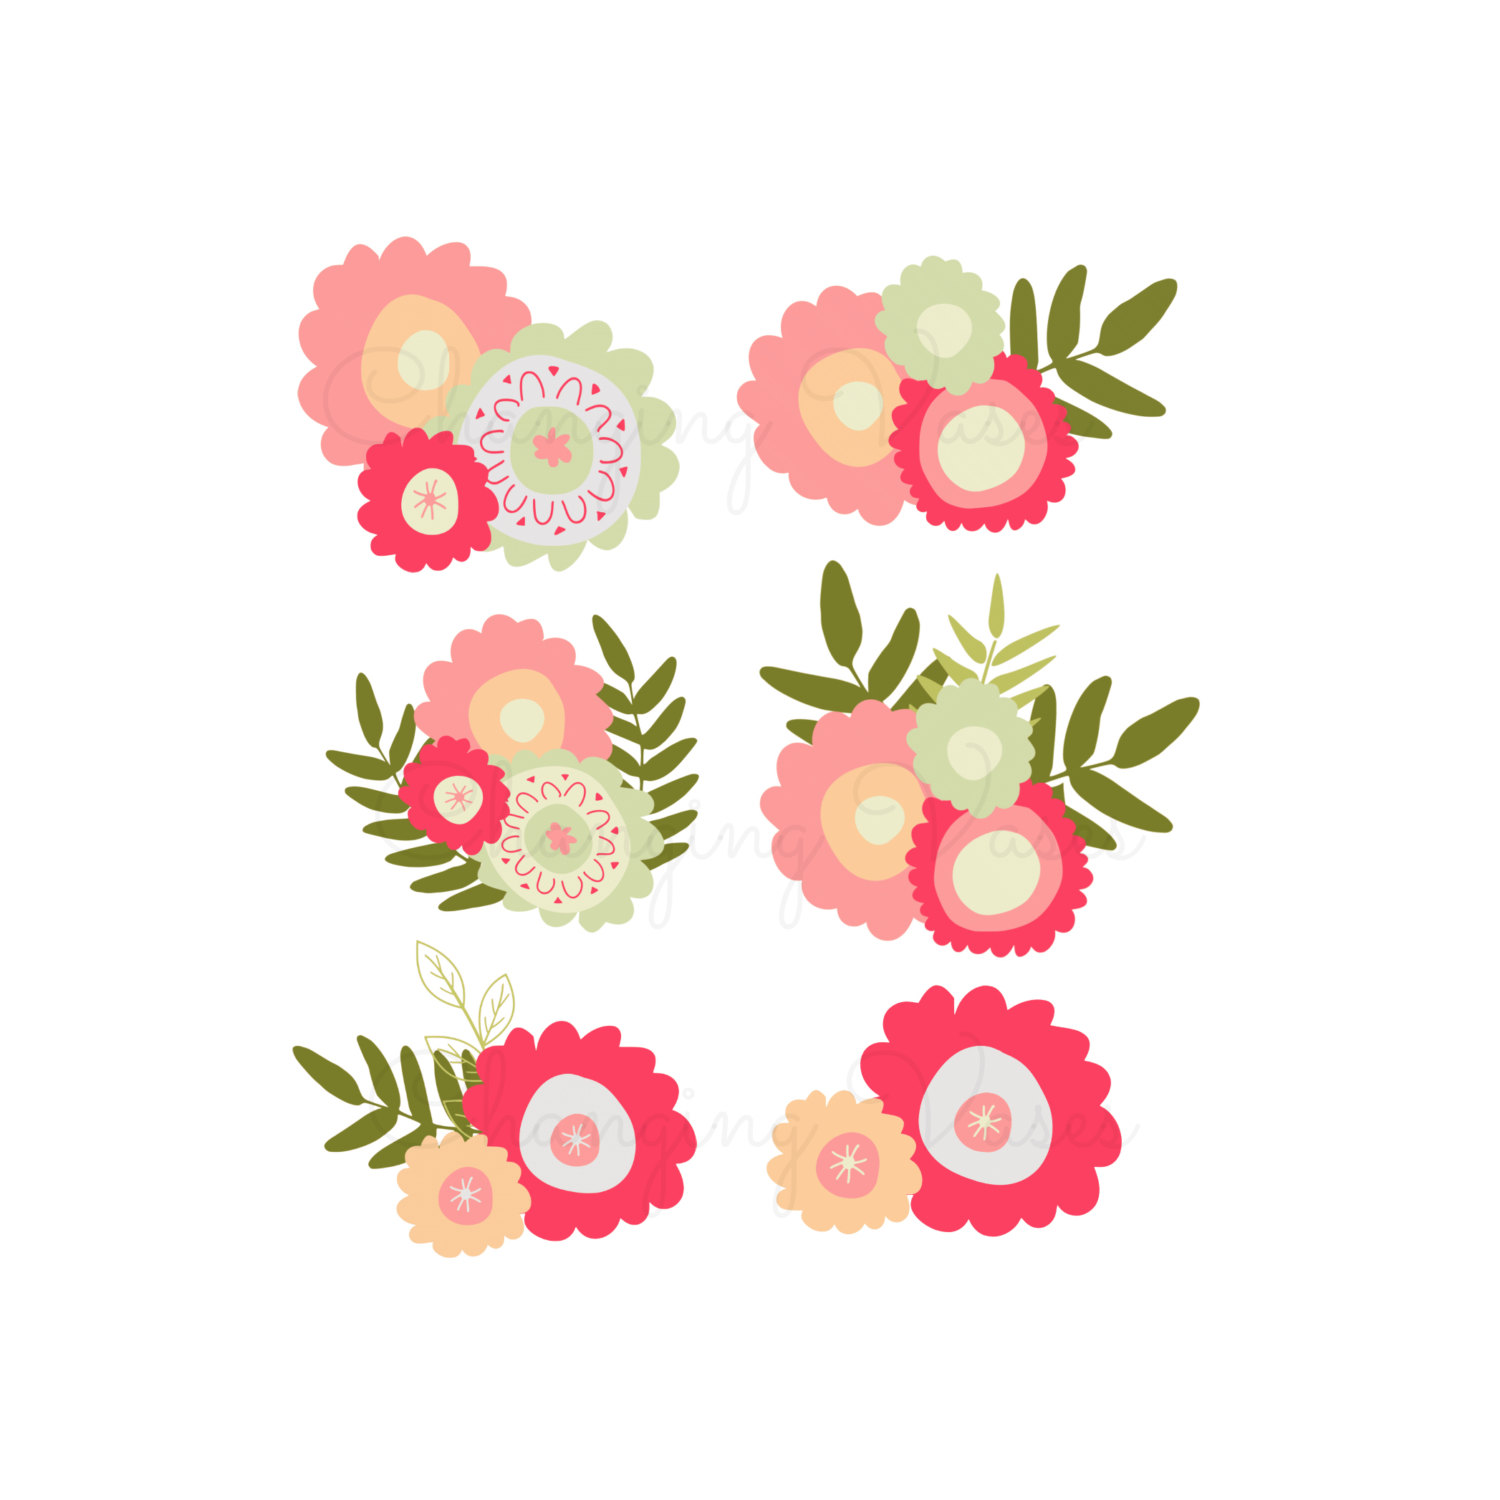 Florais clipart #2, Download drawings